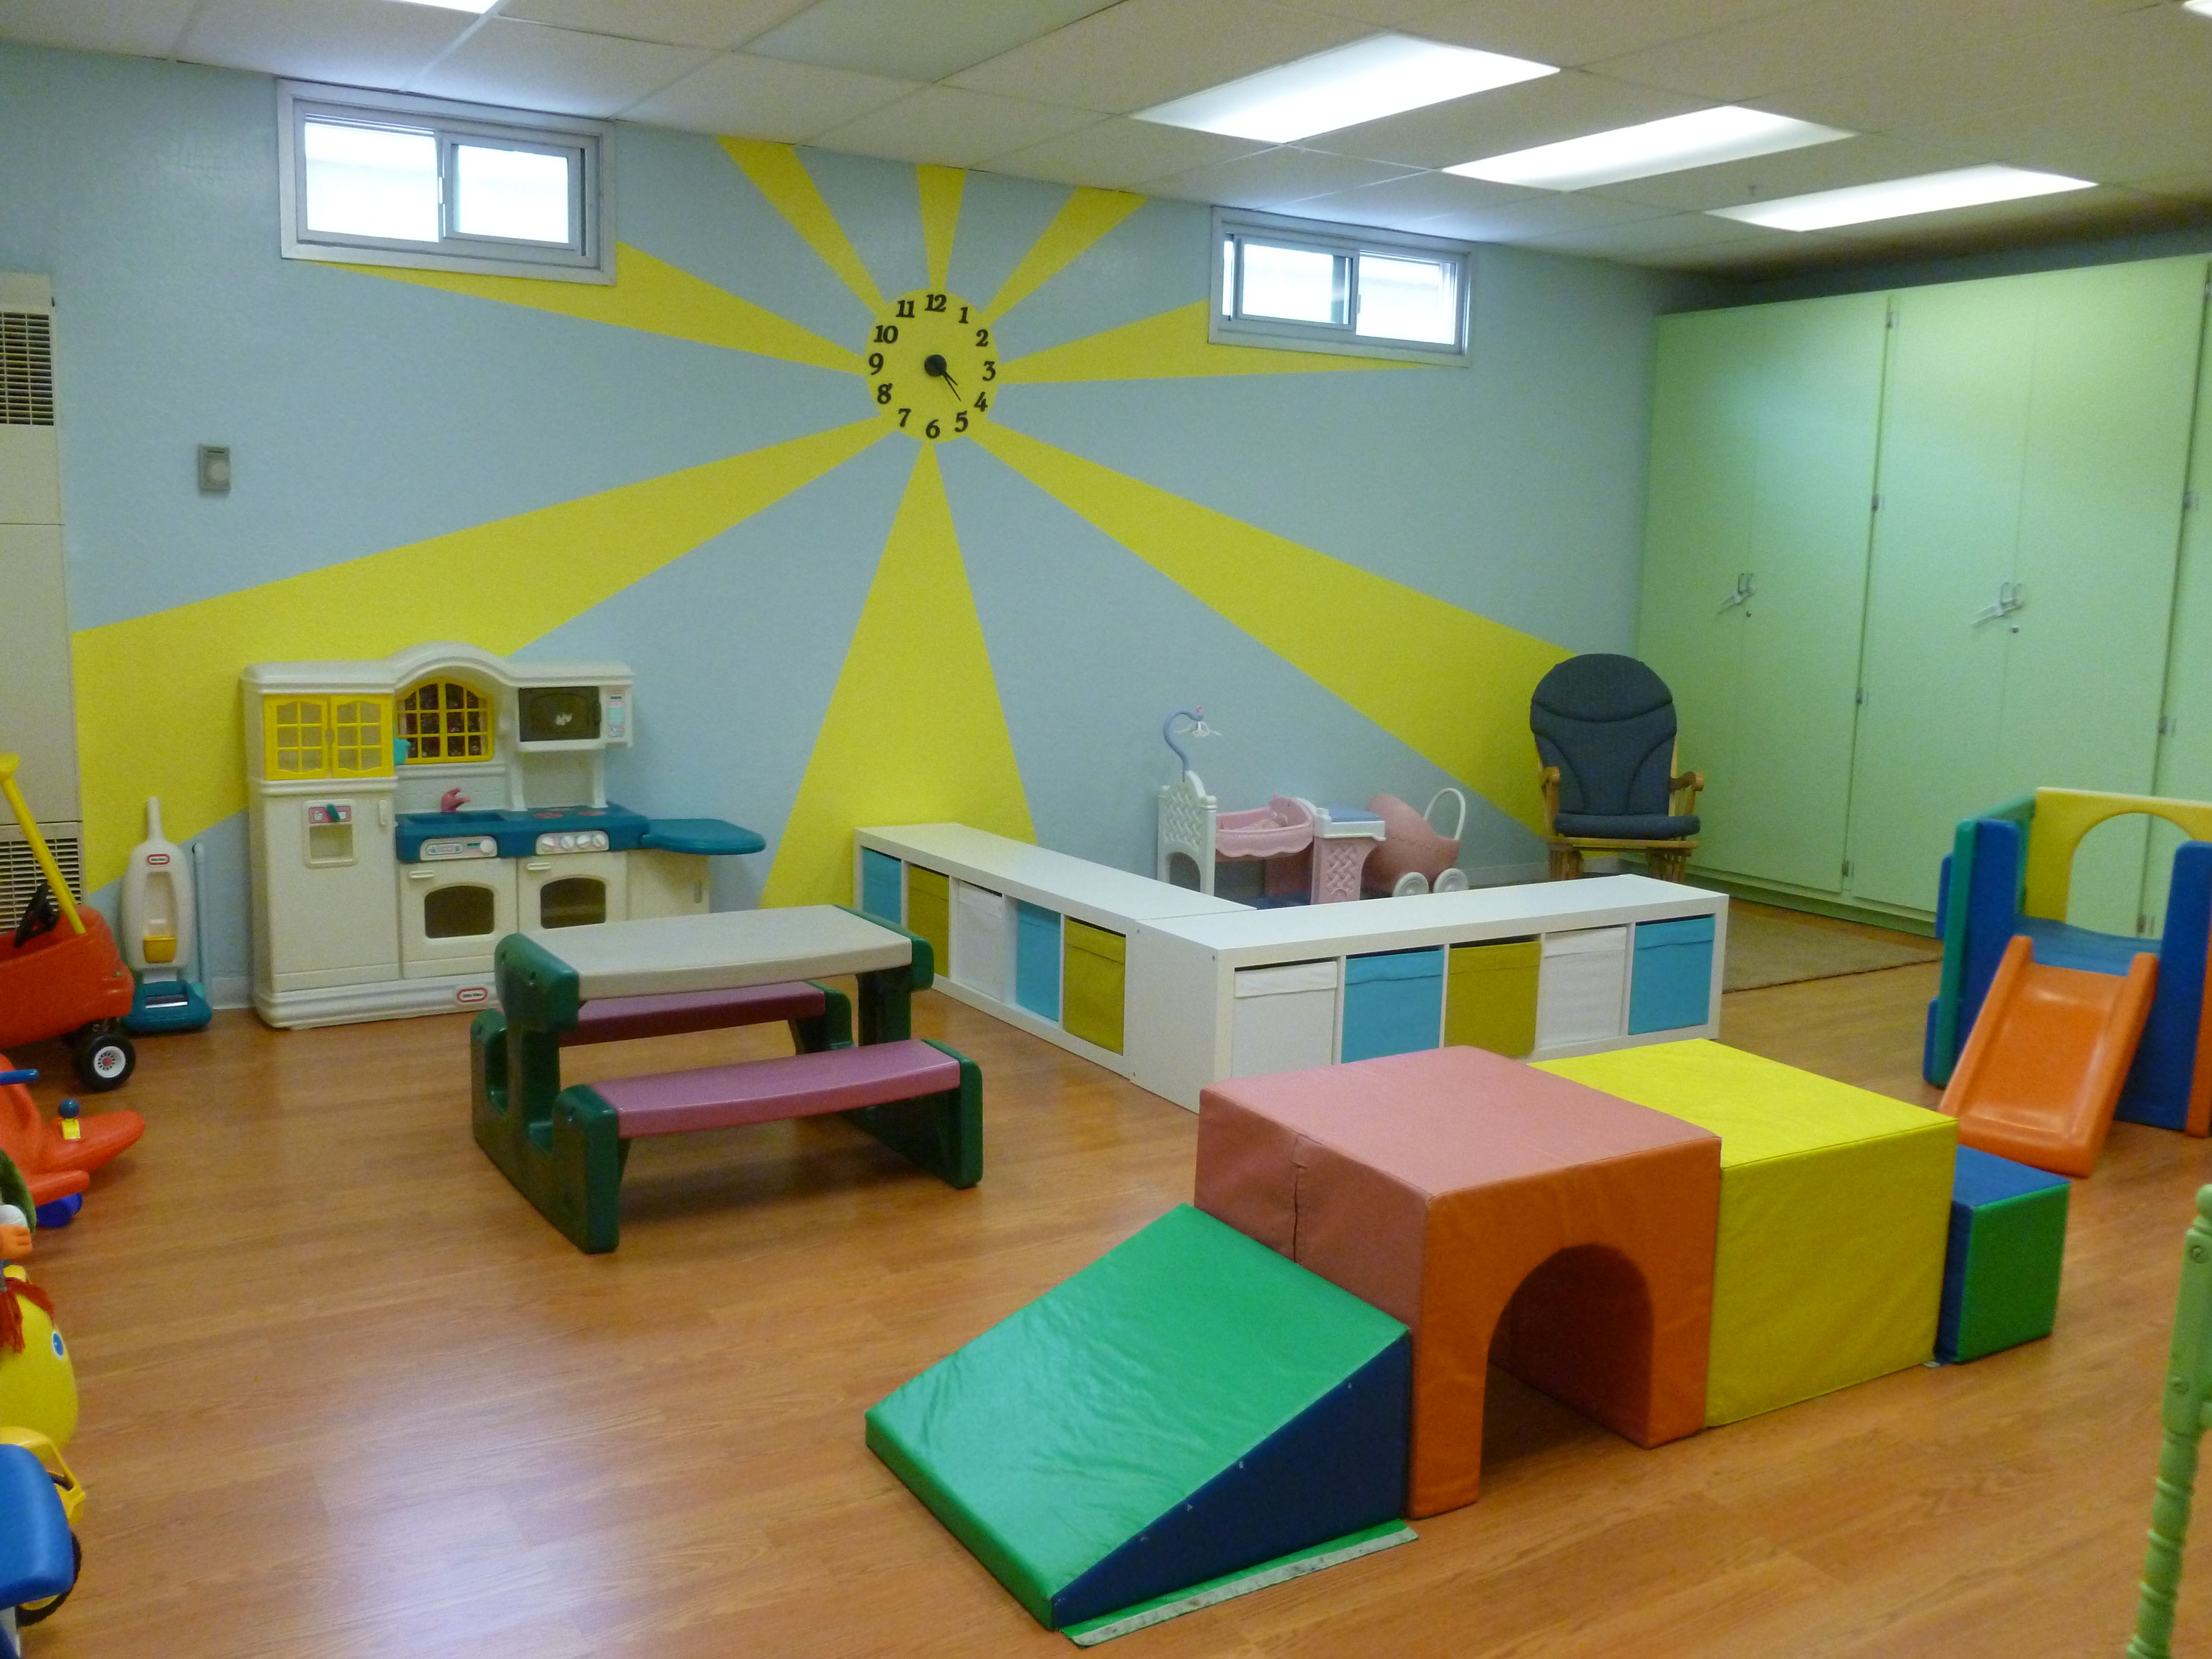 Wall colors for preschool rooms - 131 Best Images About Preschool Room Ideas On Pinterest Church Nursery Wall Mount And Playroom Design